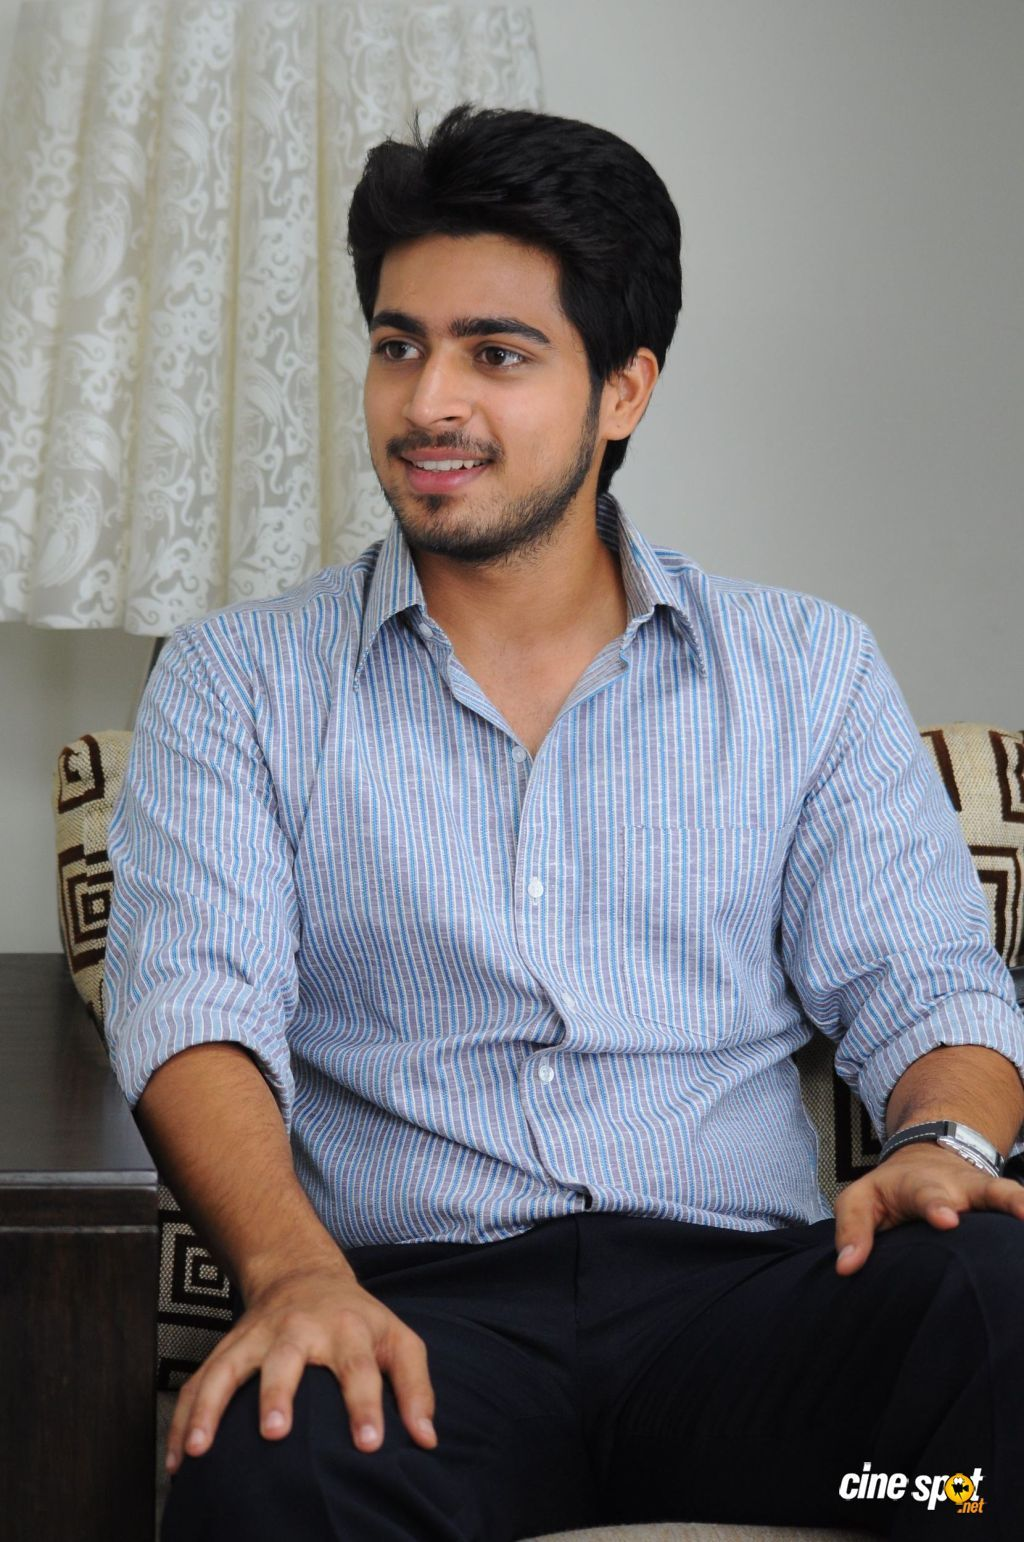 Poriyaalan Actor Harish Kalyan Veethi Handsome Indian Men Stylish Little Boys Handsome Actors See more ideas about man photo, man, photo. poriyaalan actor harish kalyan veethi